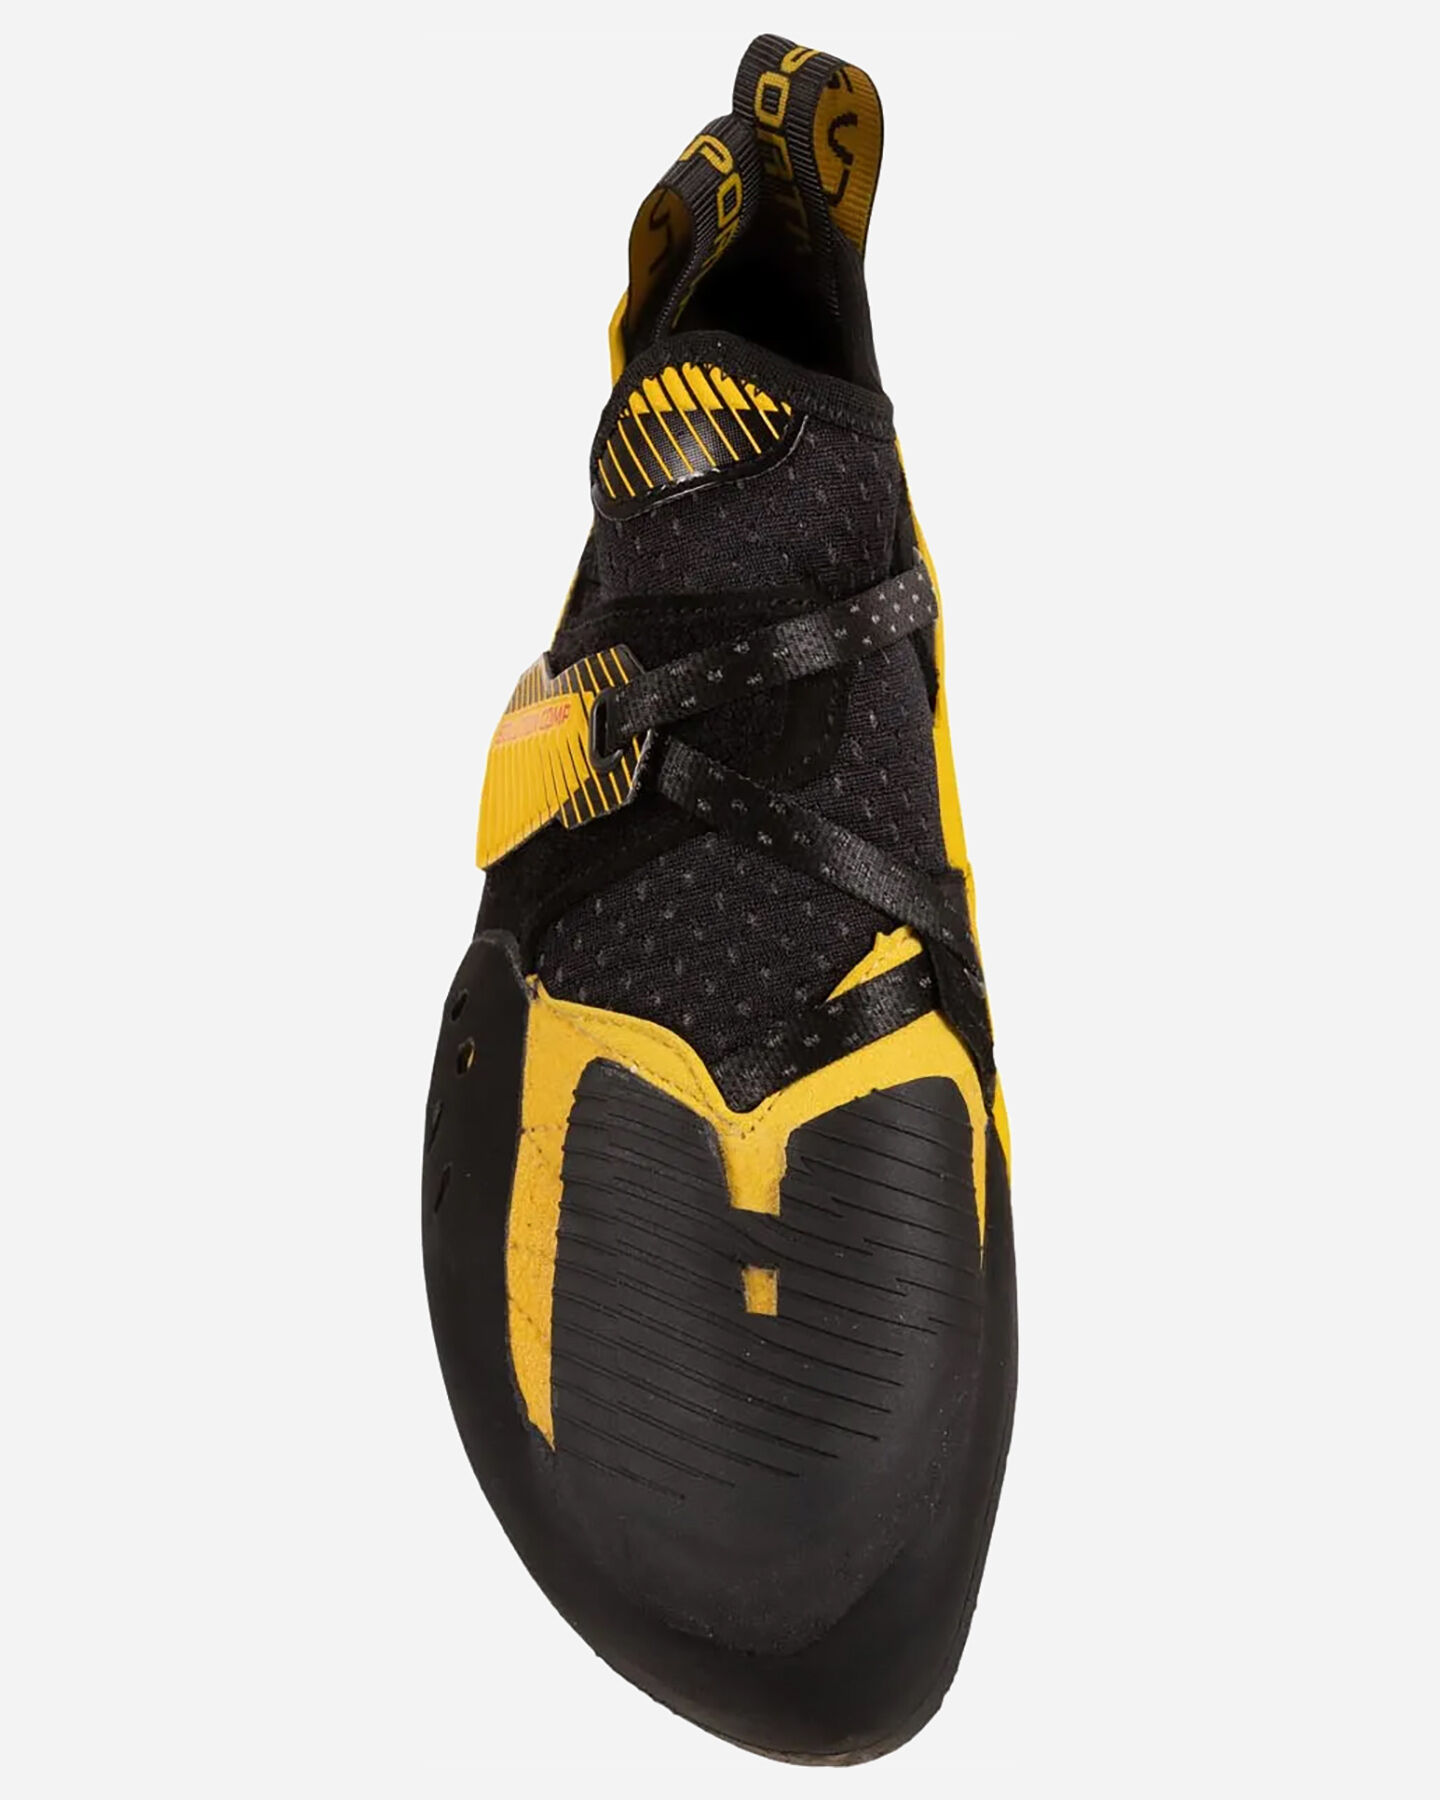 Scarpette arrampicata LA SPORTIVA SOLUTION COMP S5198171 scatto 5